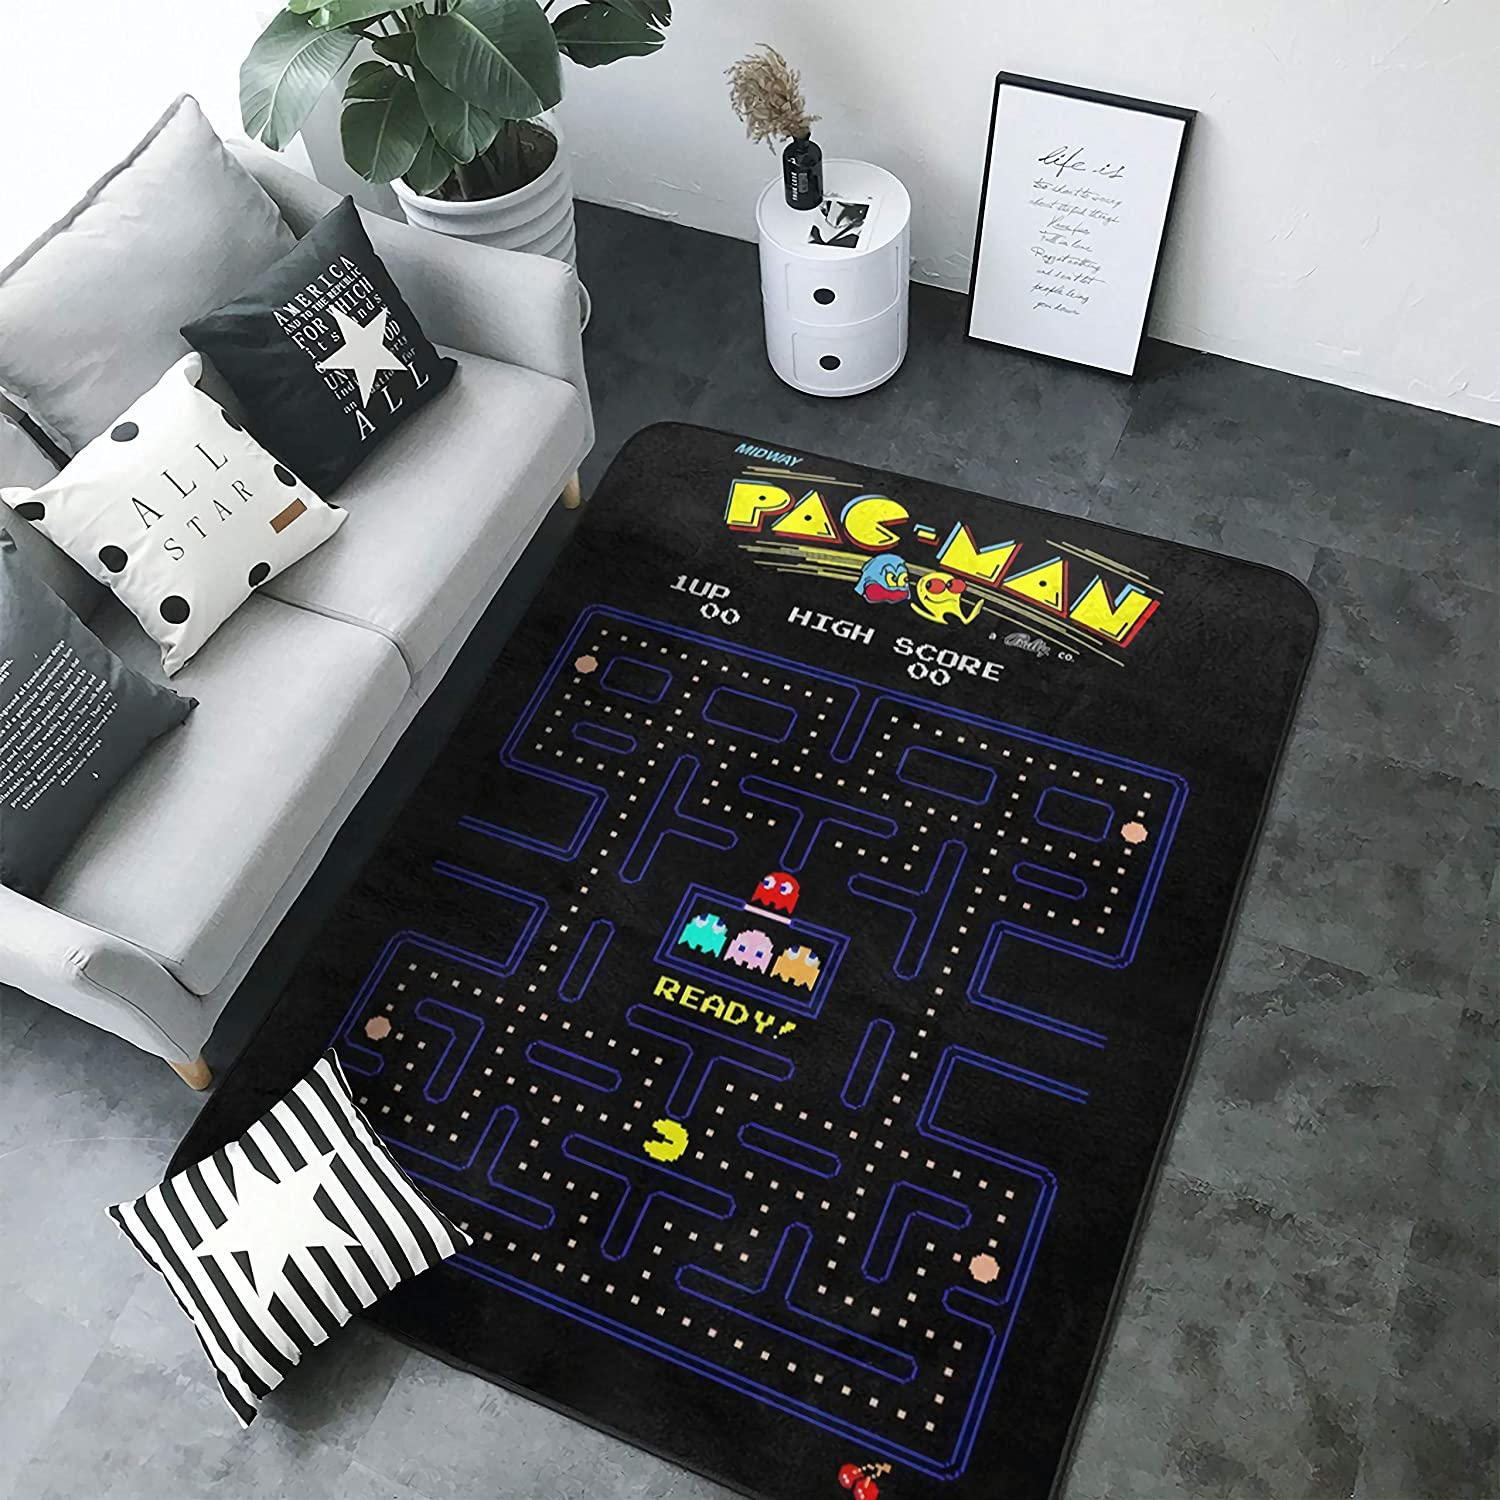 Arcade Video Game Carpets Non-Slip Area Rugs Home Decor Floor Mat Living Room Bedroom Carpets Doormats